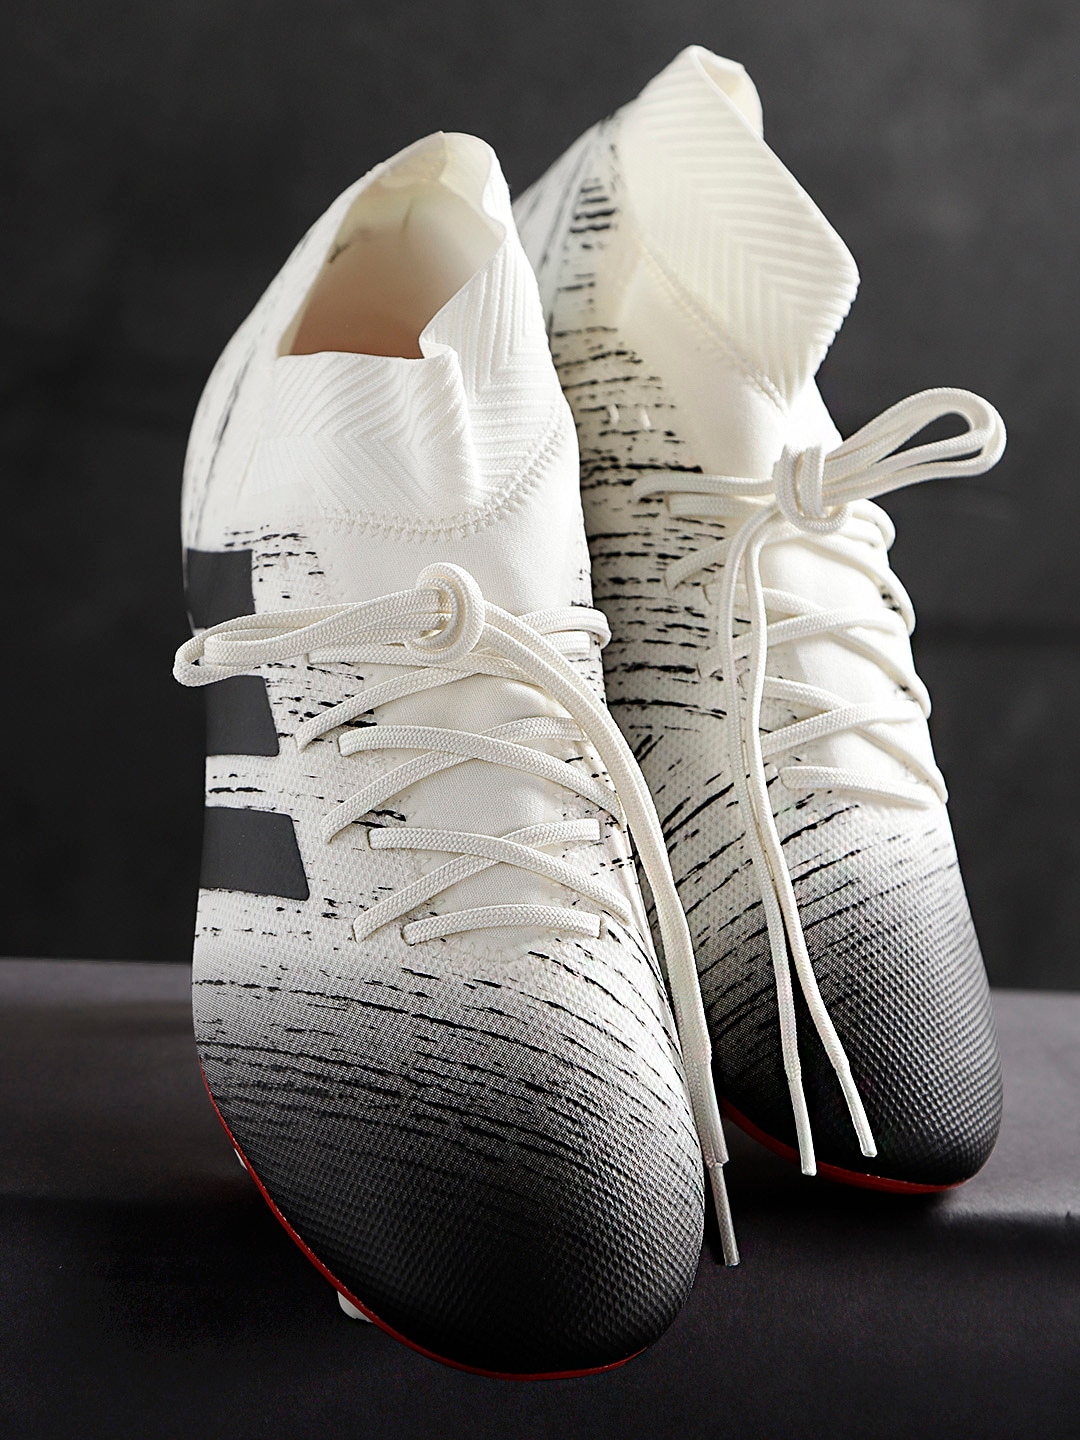 official photos b4dd3 6ebd6 White Sports Shoes - Buy White Sports, Running Shoes Online